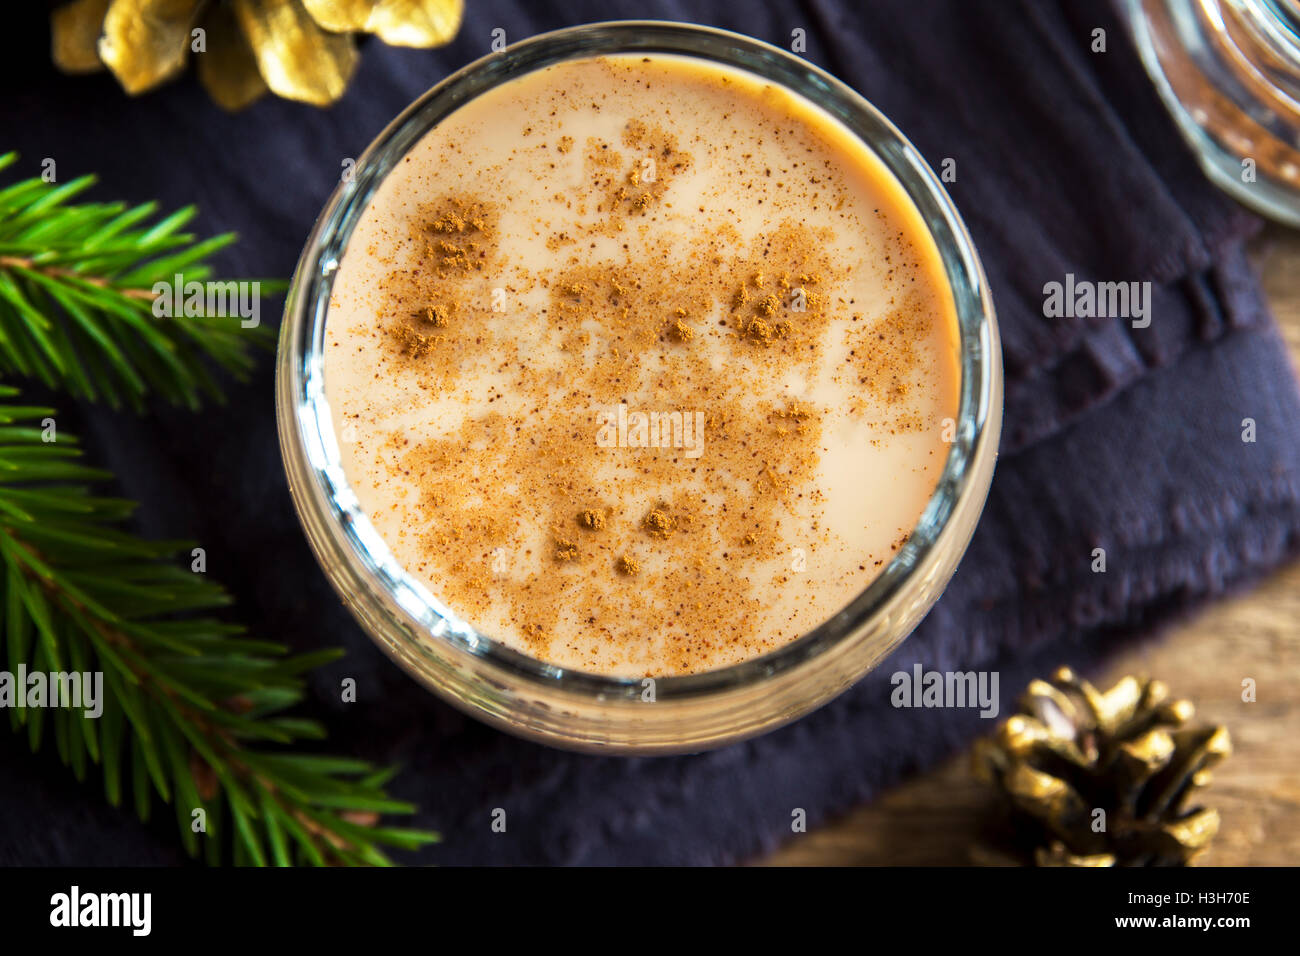 Lait de poule à la cannelle dans verre close up avec un décor de Noël traditionnel fait maison - Photo Stock